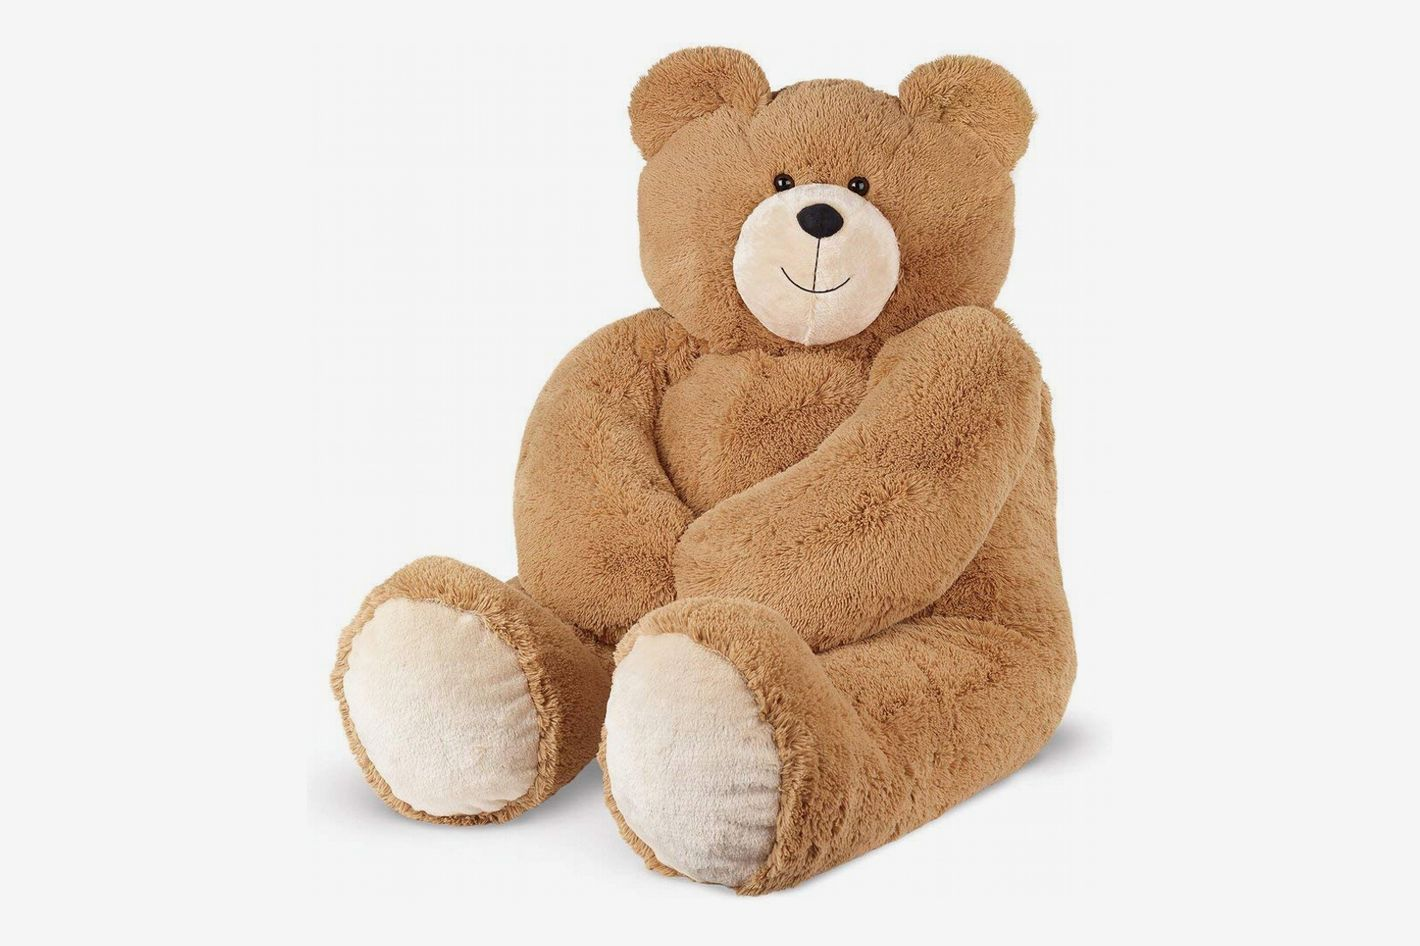 Vermont Teddy Bear - Giant Love Bear, 4 Feet Tall, Brown